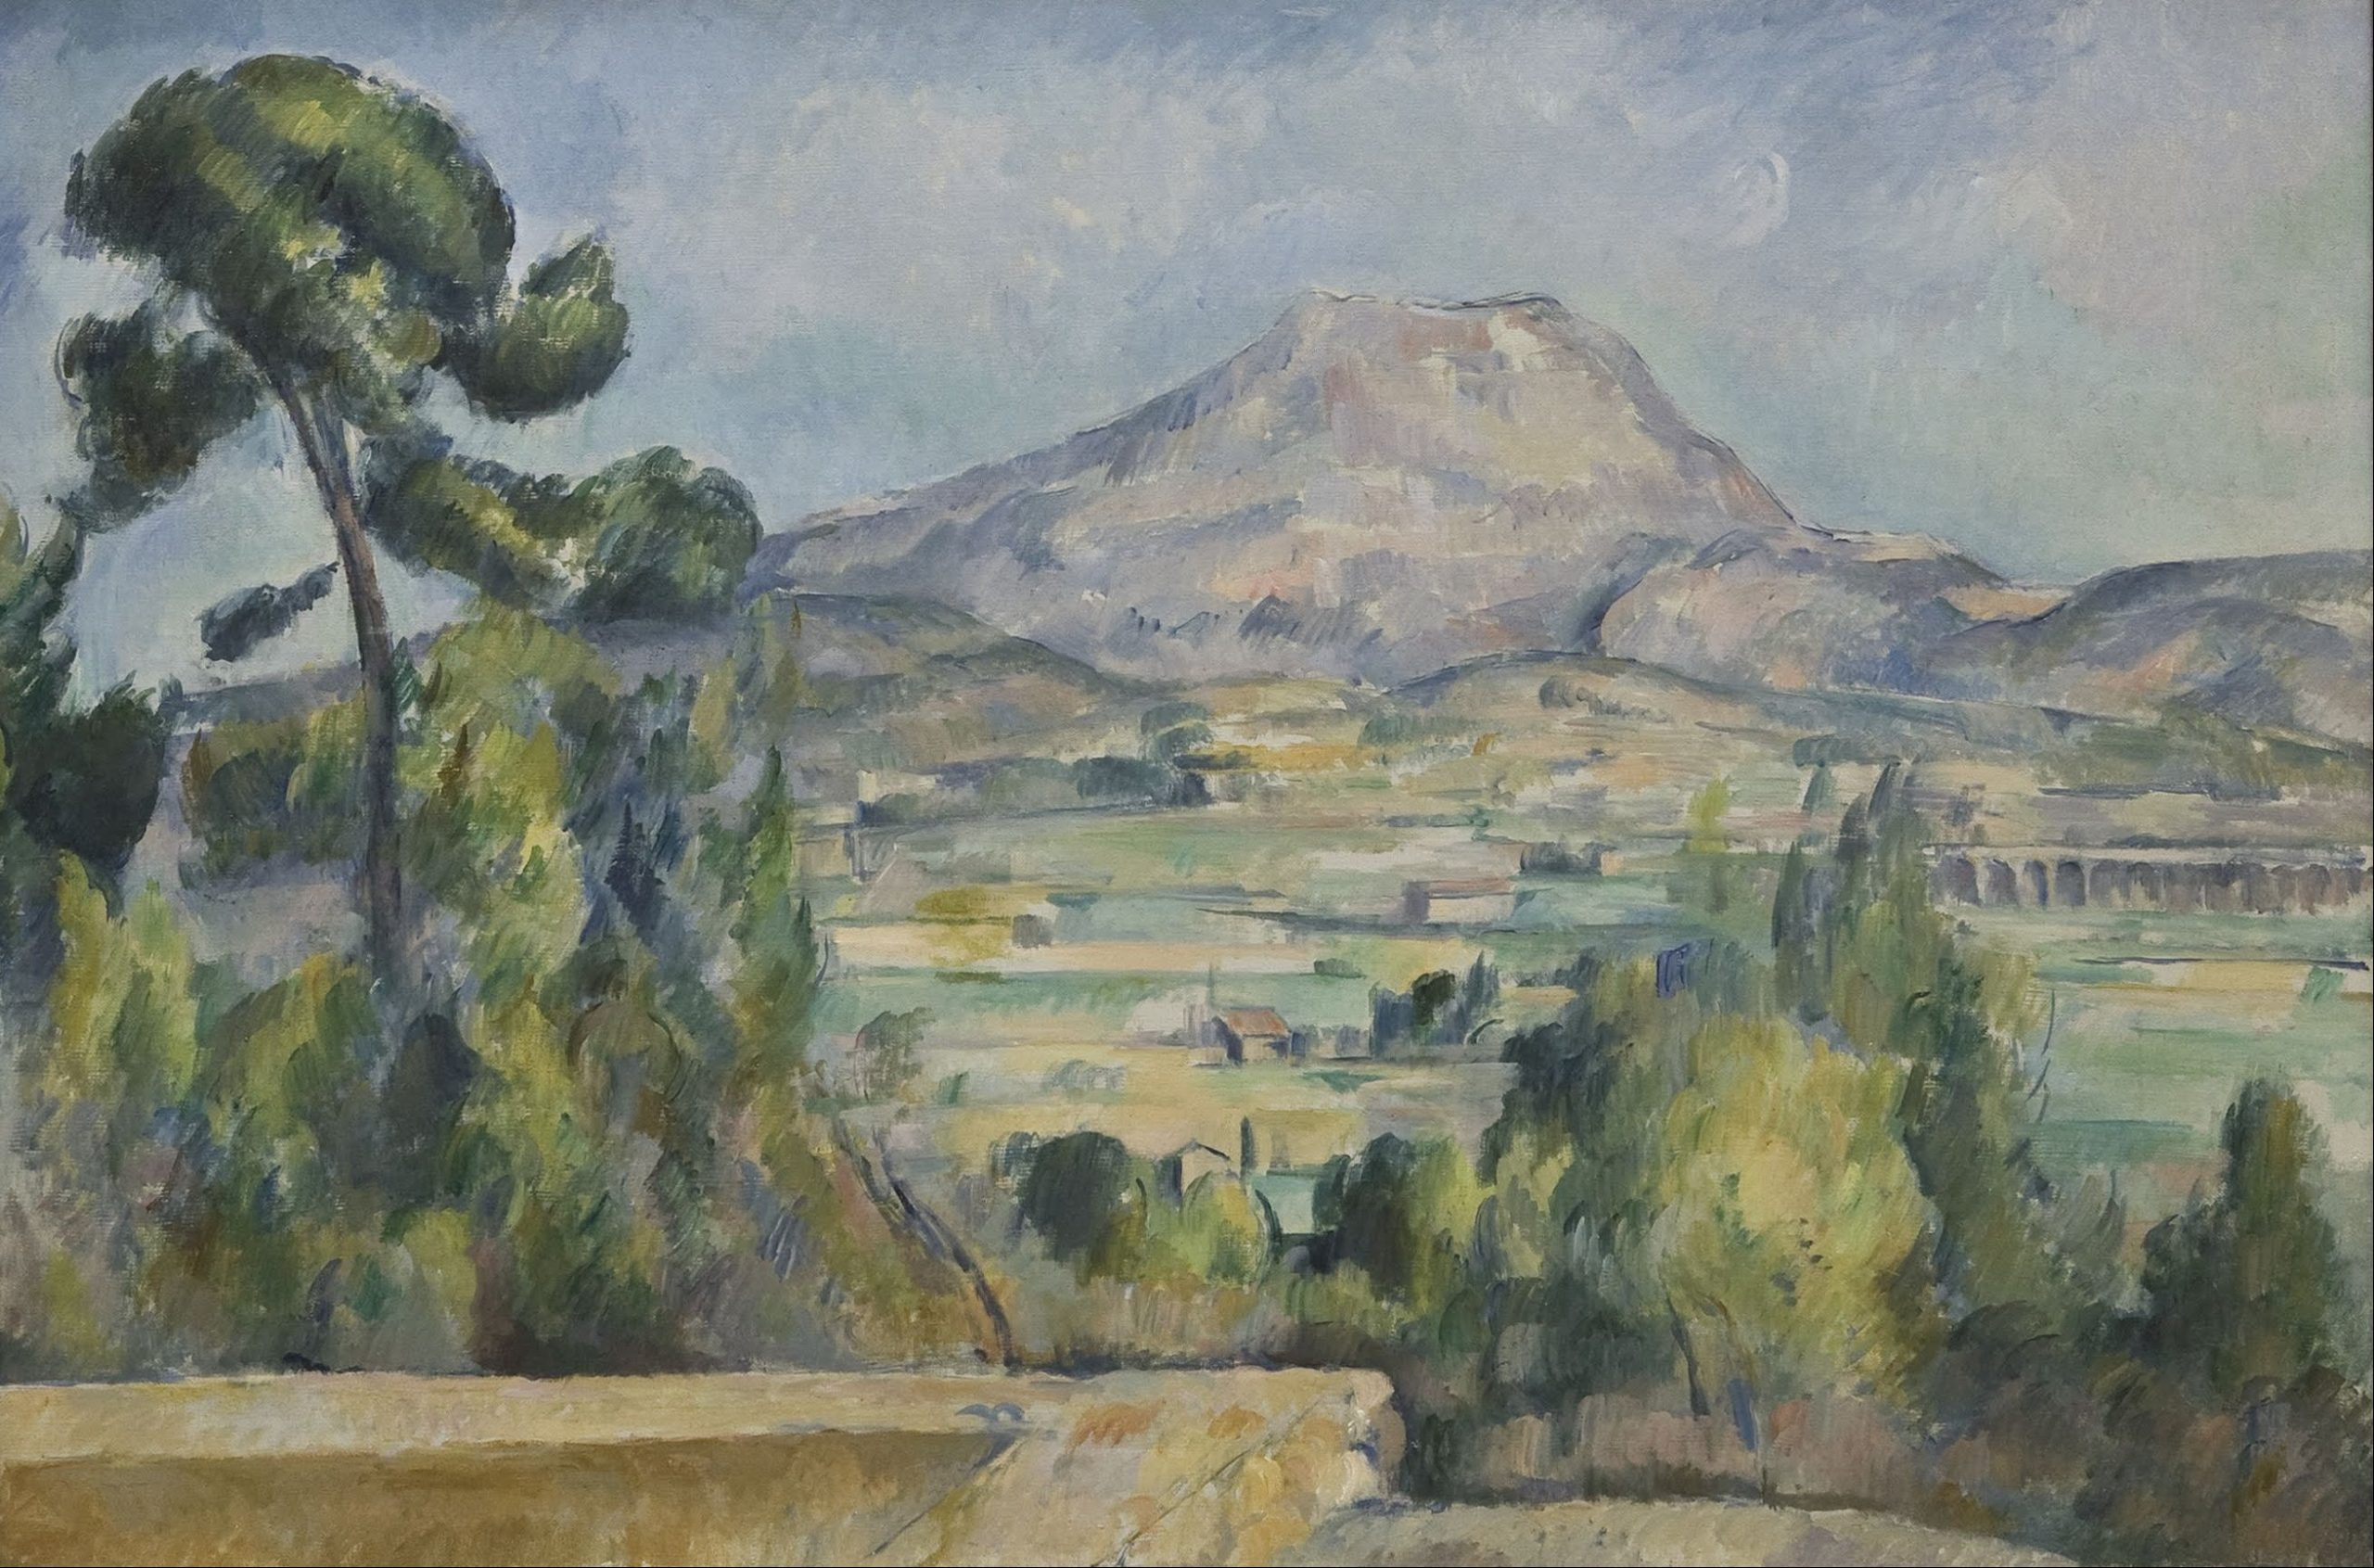 Cézanne Painted This Mountain Dozens of Times. Here Are 3 Things You May Not Know About His Obsession With the View